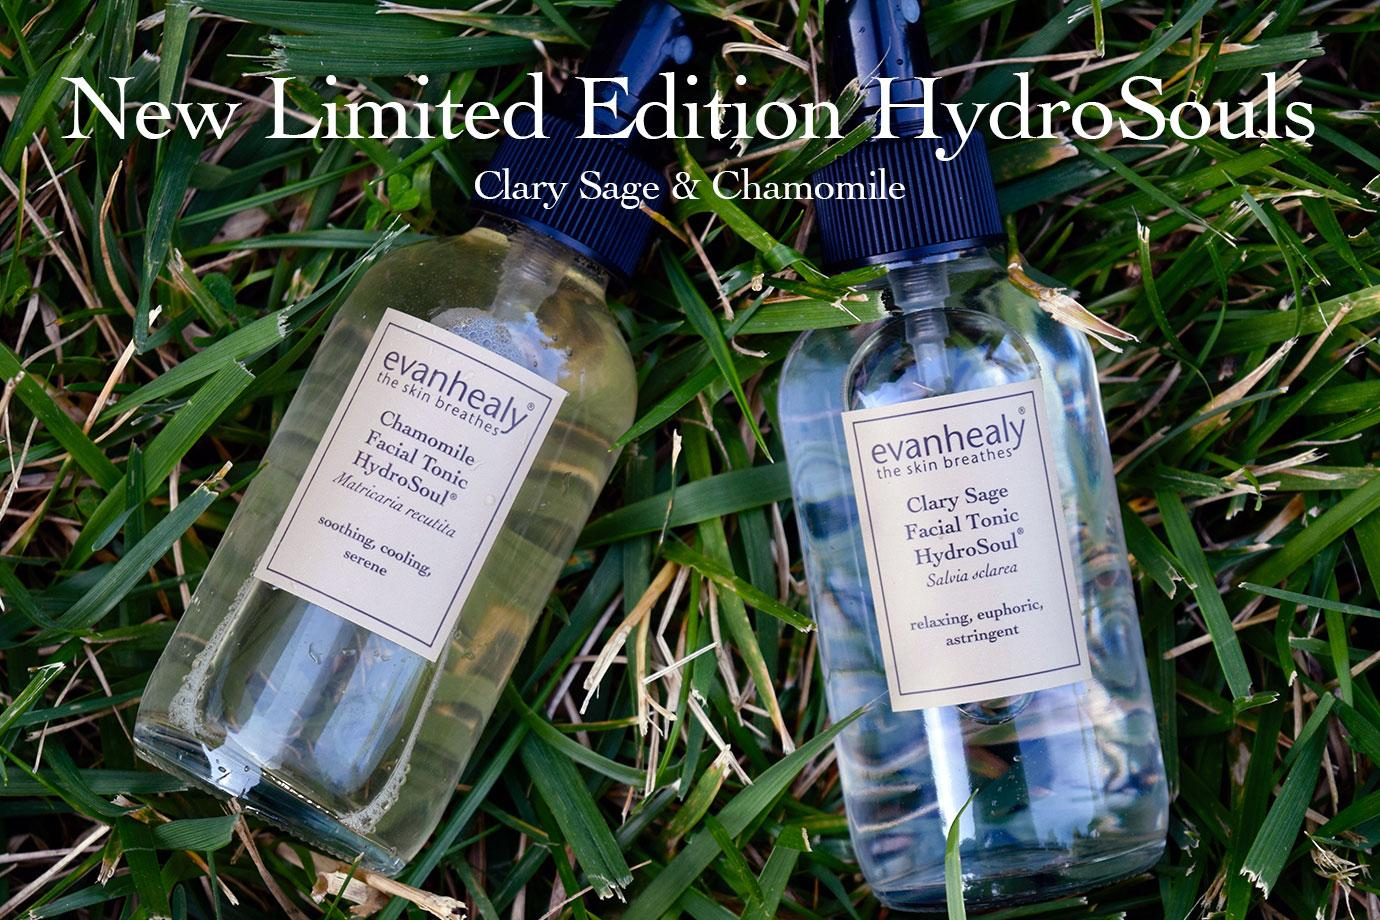 New Limited Edition HydroSouls -- Clary Sage & Chamomile.